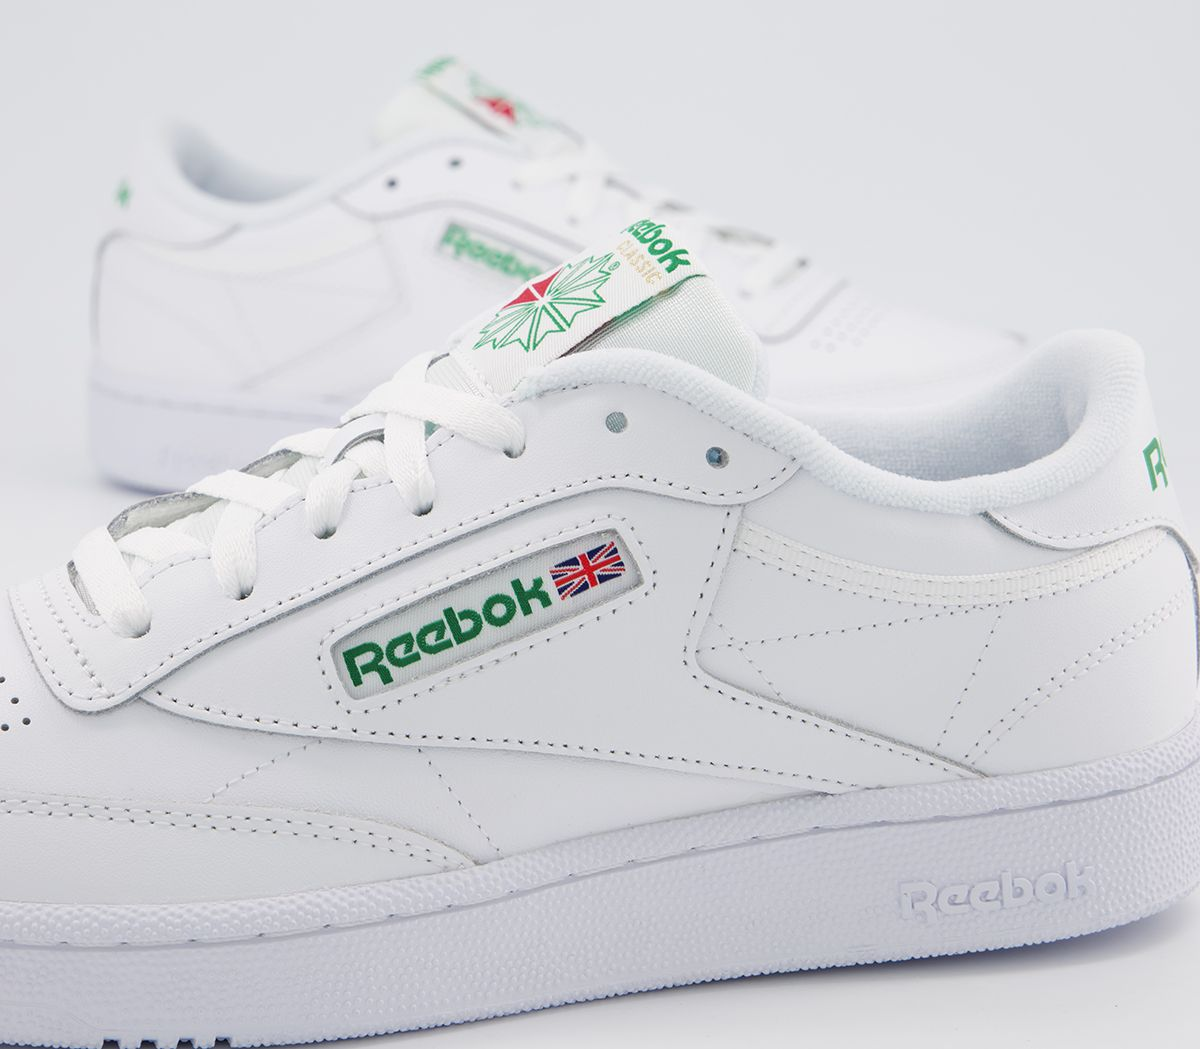 d7488db6542 Reebok Club C 85 White Green - His trainers